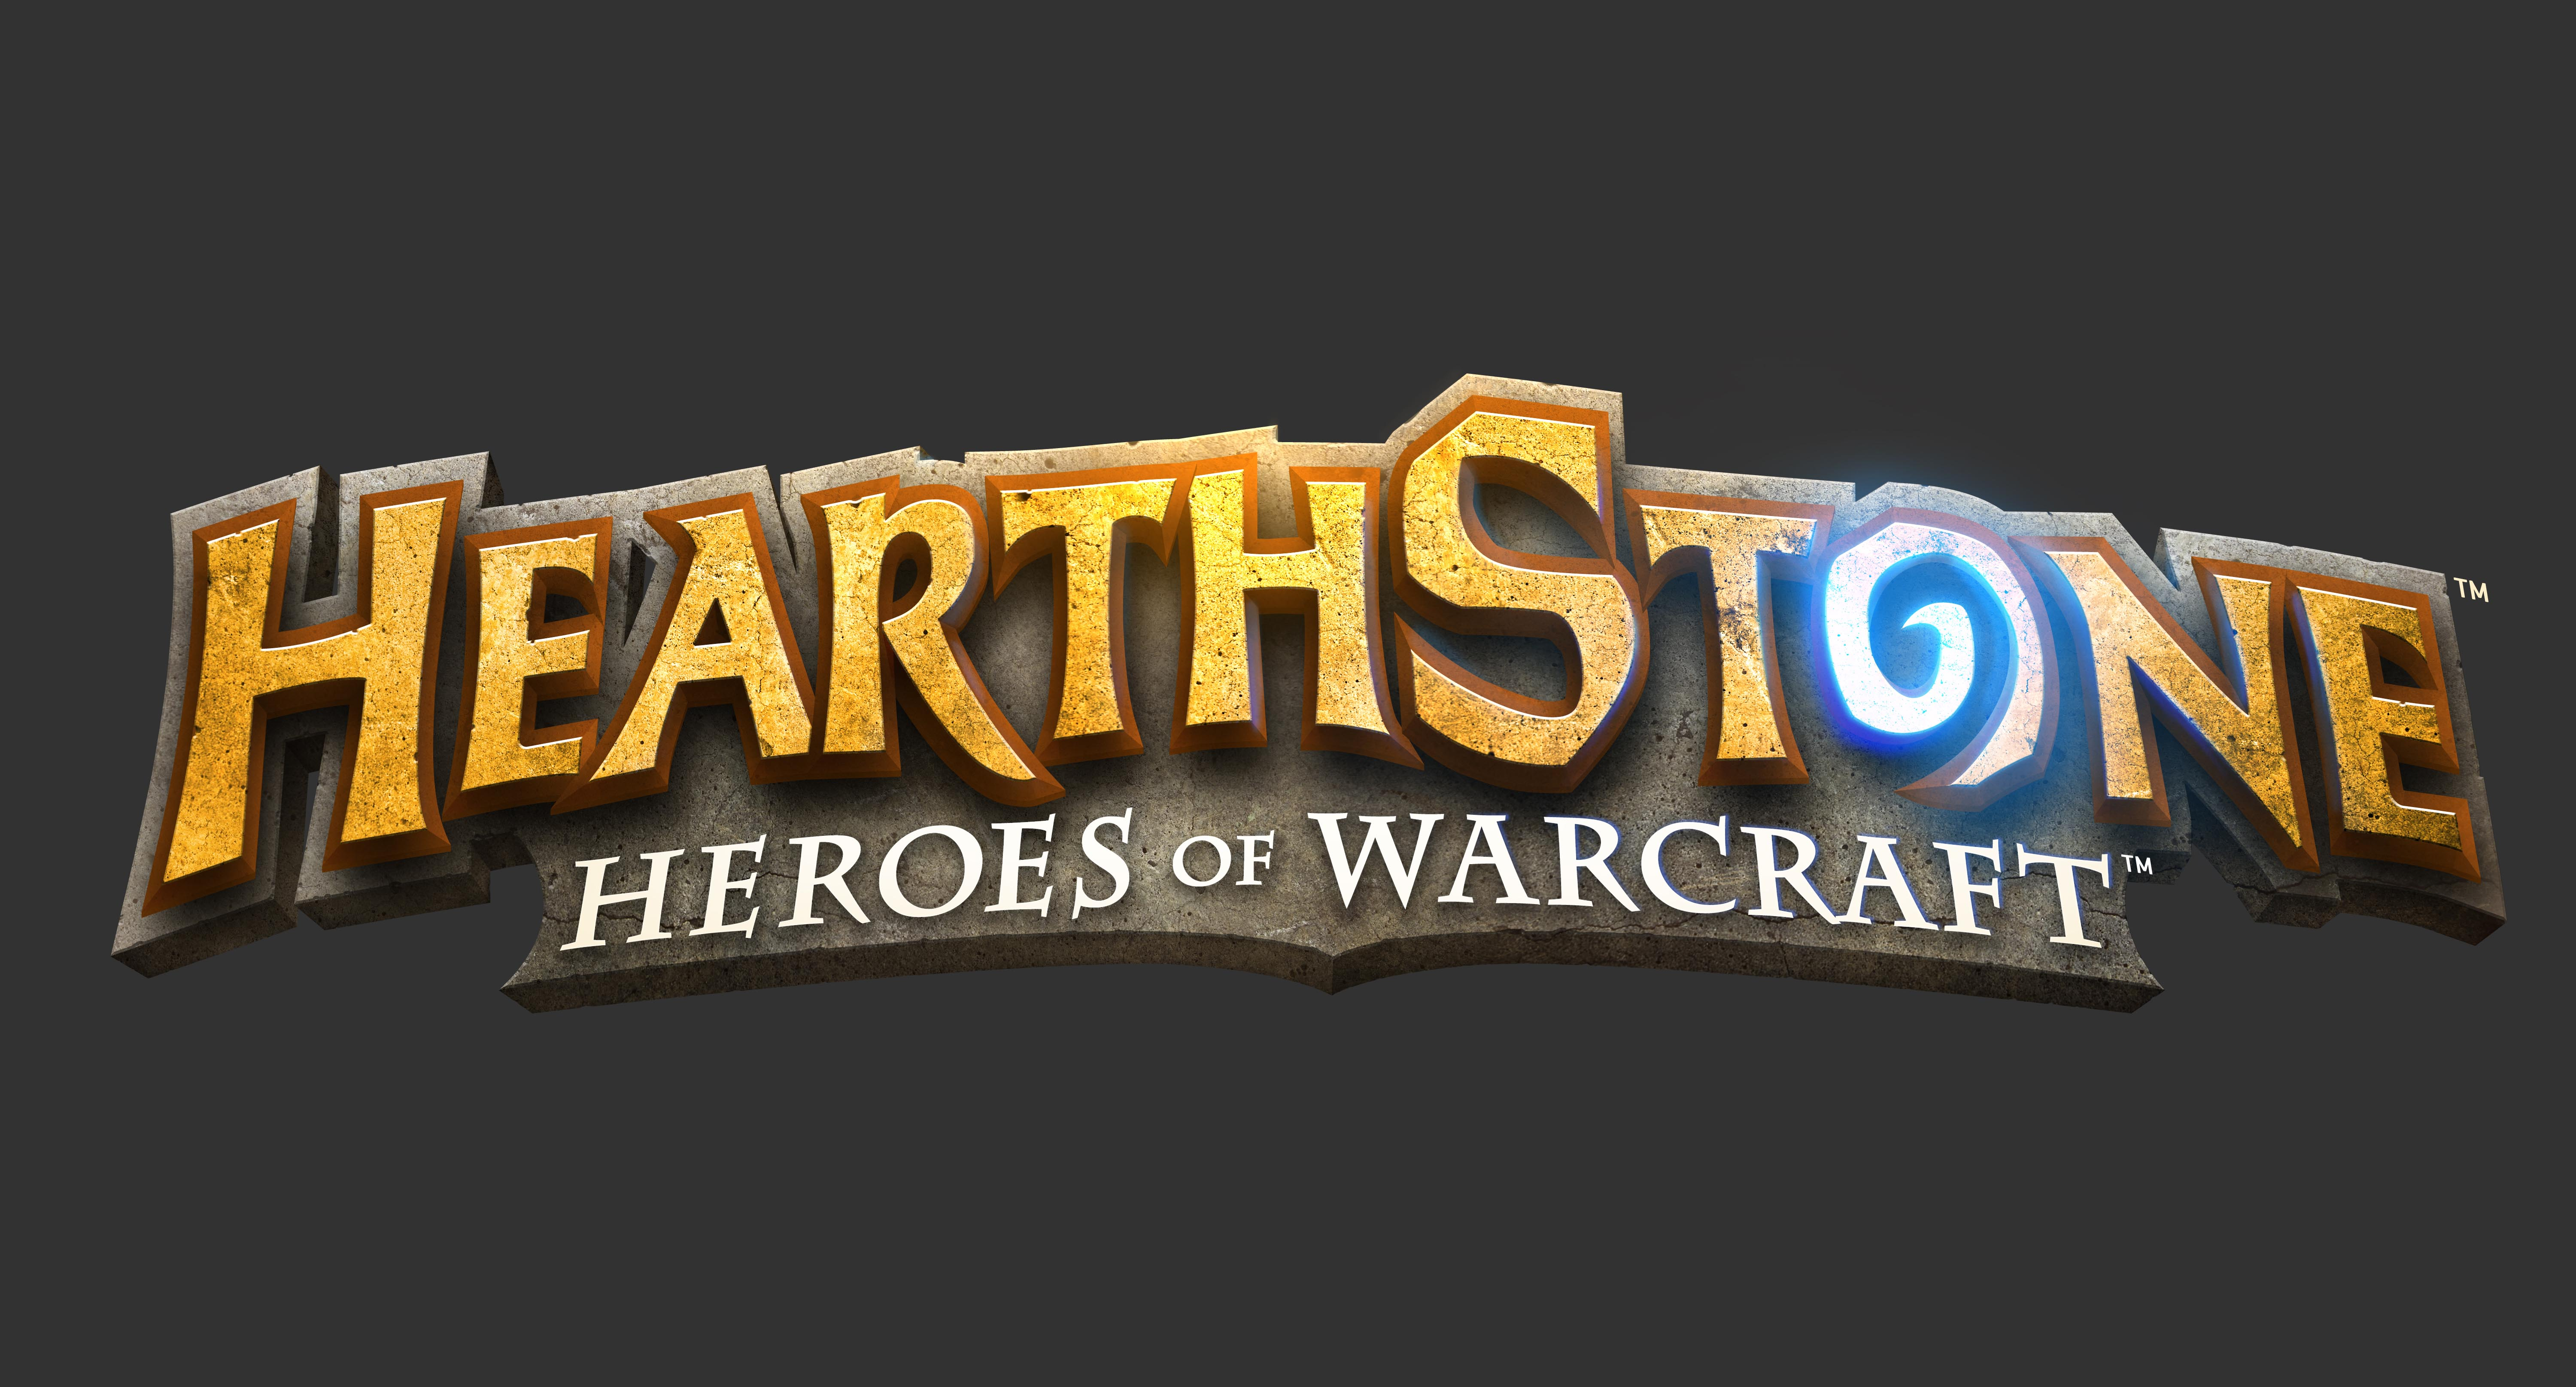 HearthStone - Heroes of Warcraft - Bestes internationales Multiplayer-Spiel beim DCP 2015